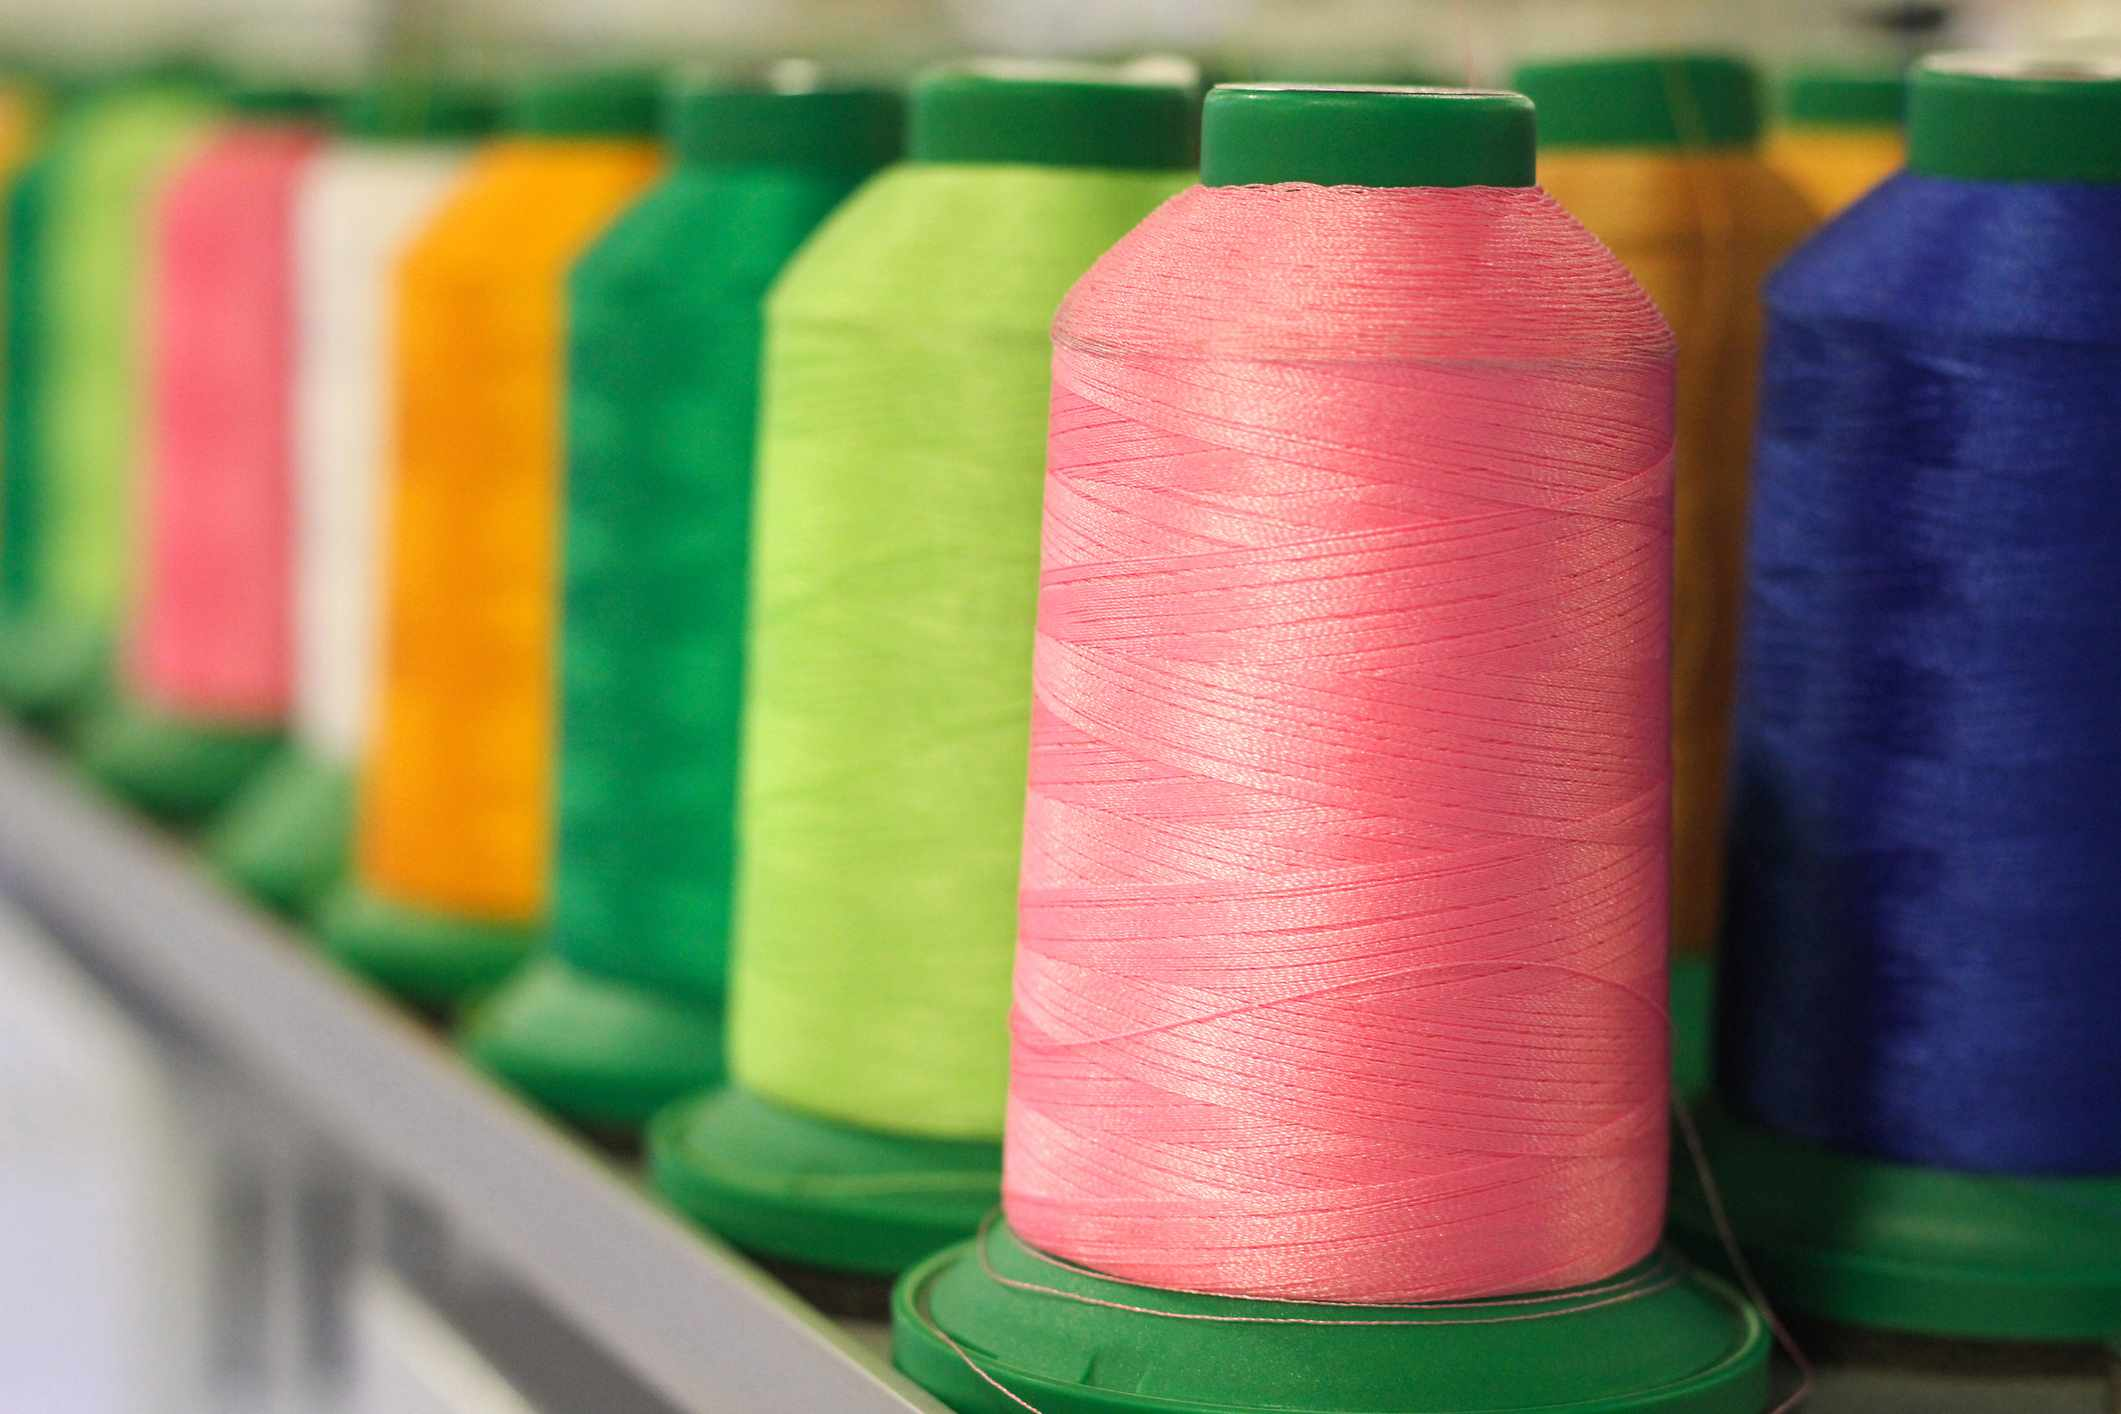 Rows of colorful thread spools